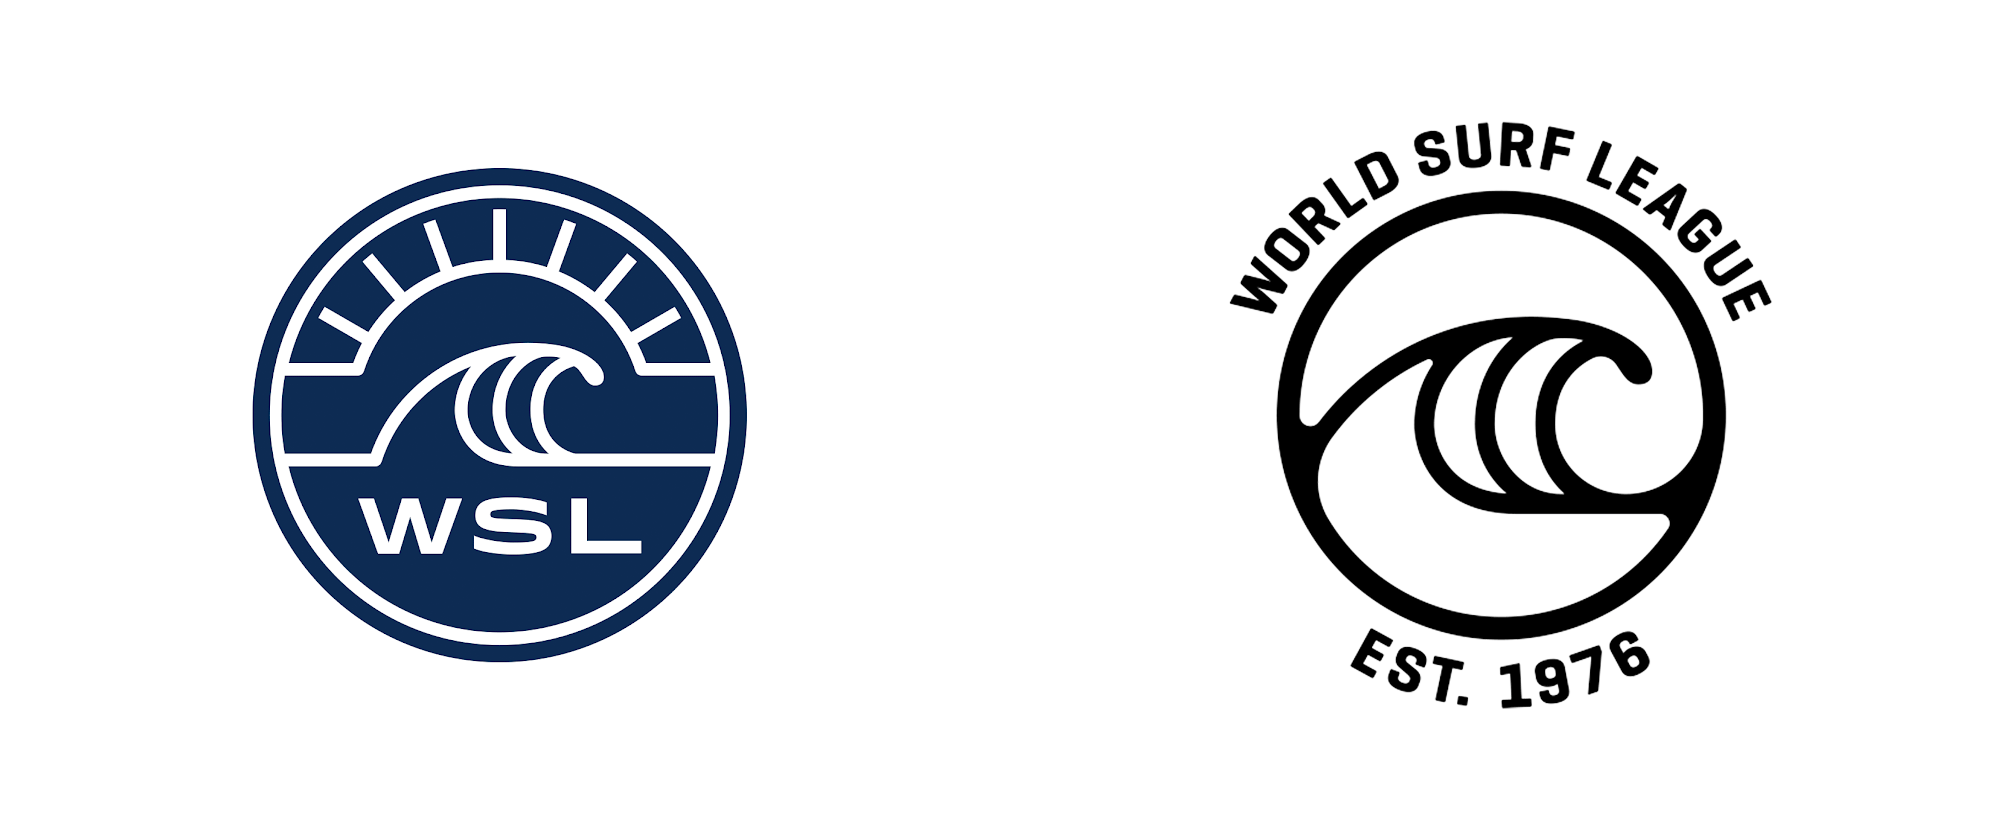 New Logo for World Surf League